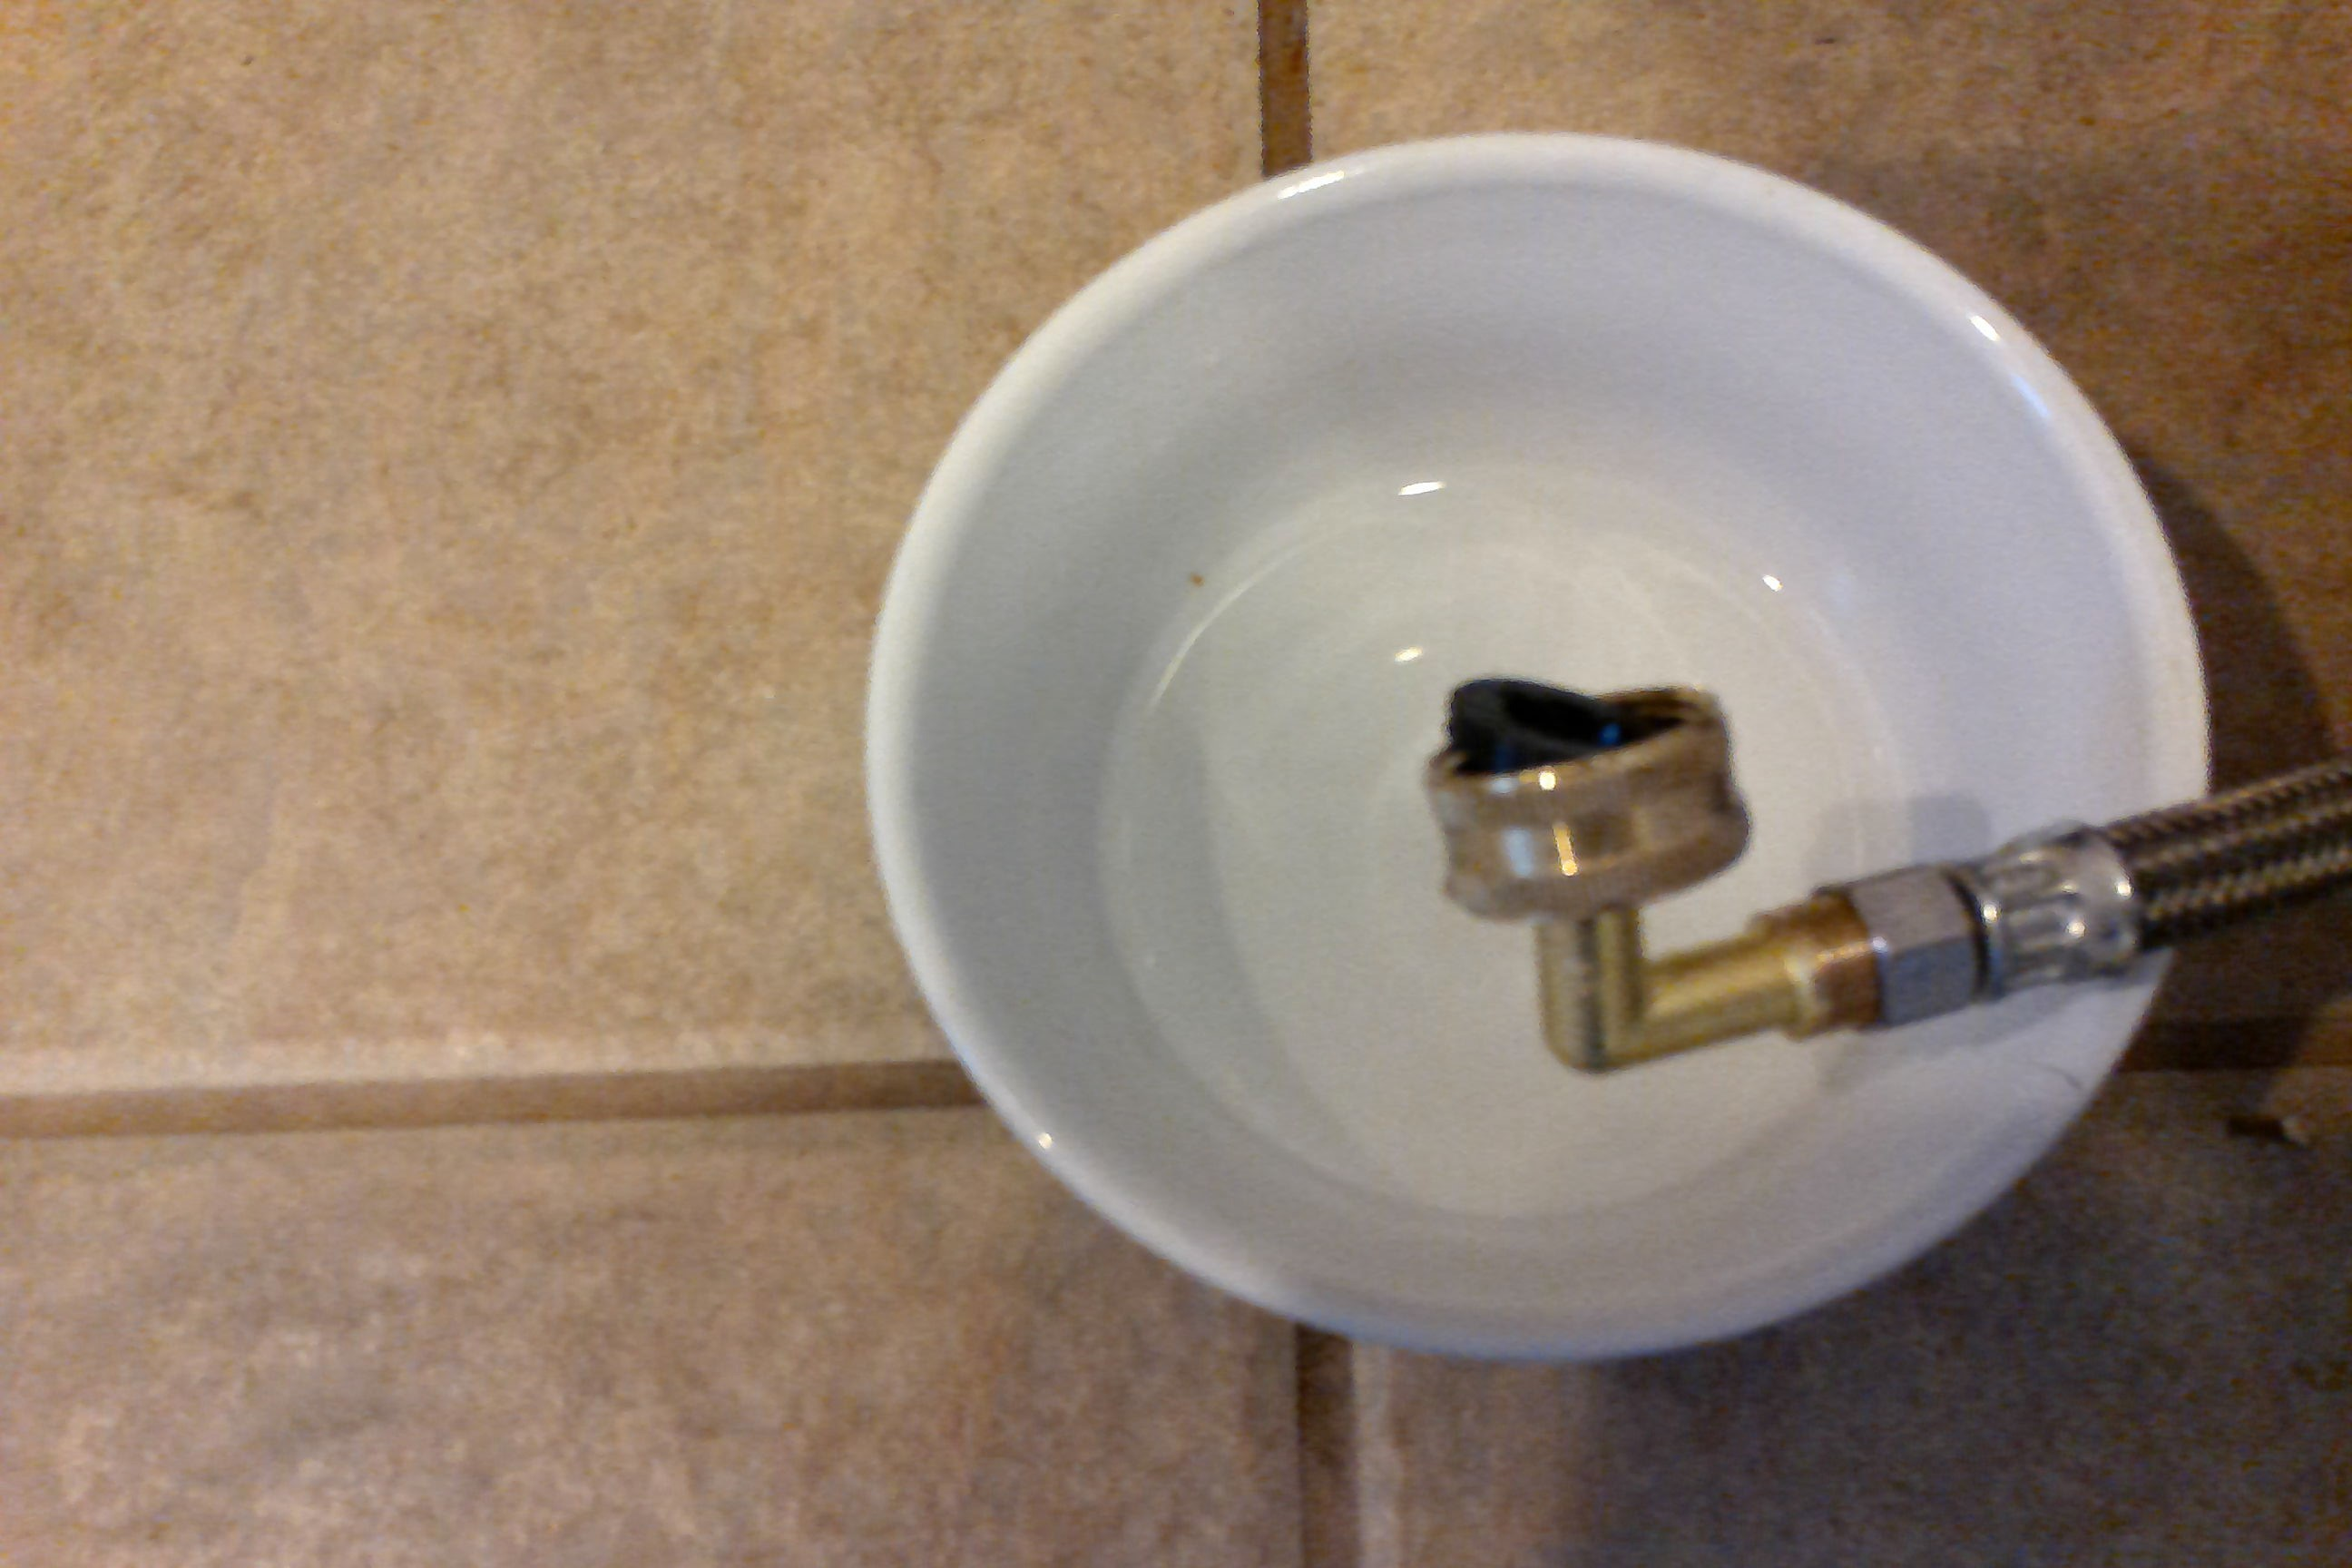 Plumbing What Should I Do If The Plastic Waterline